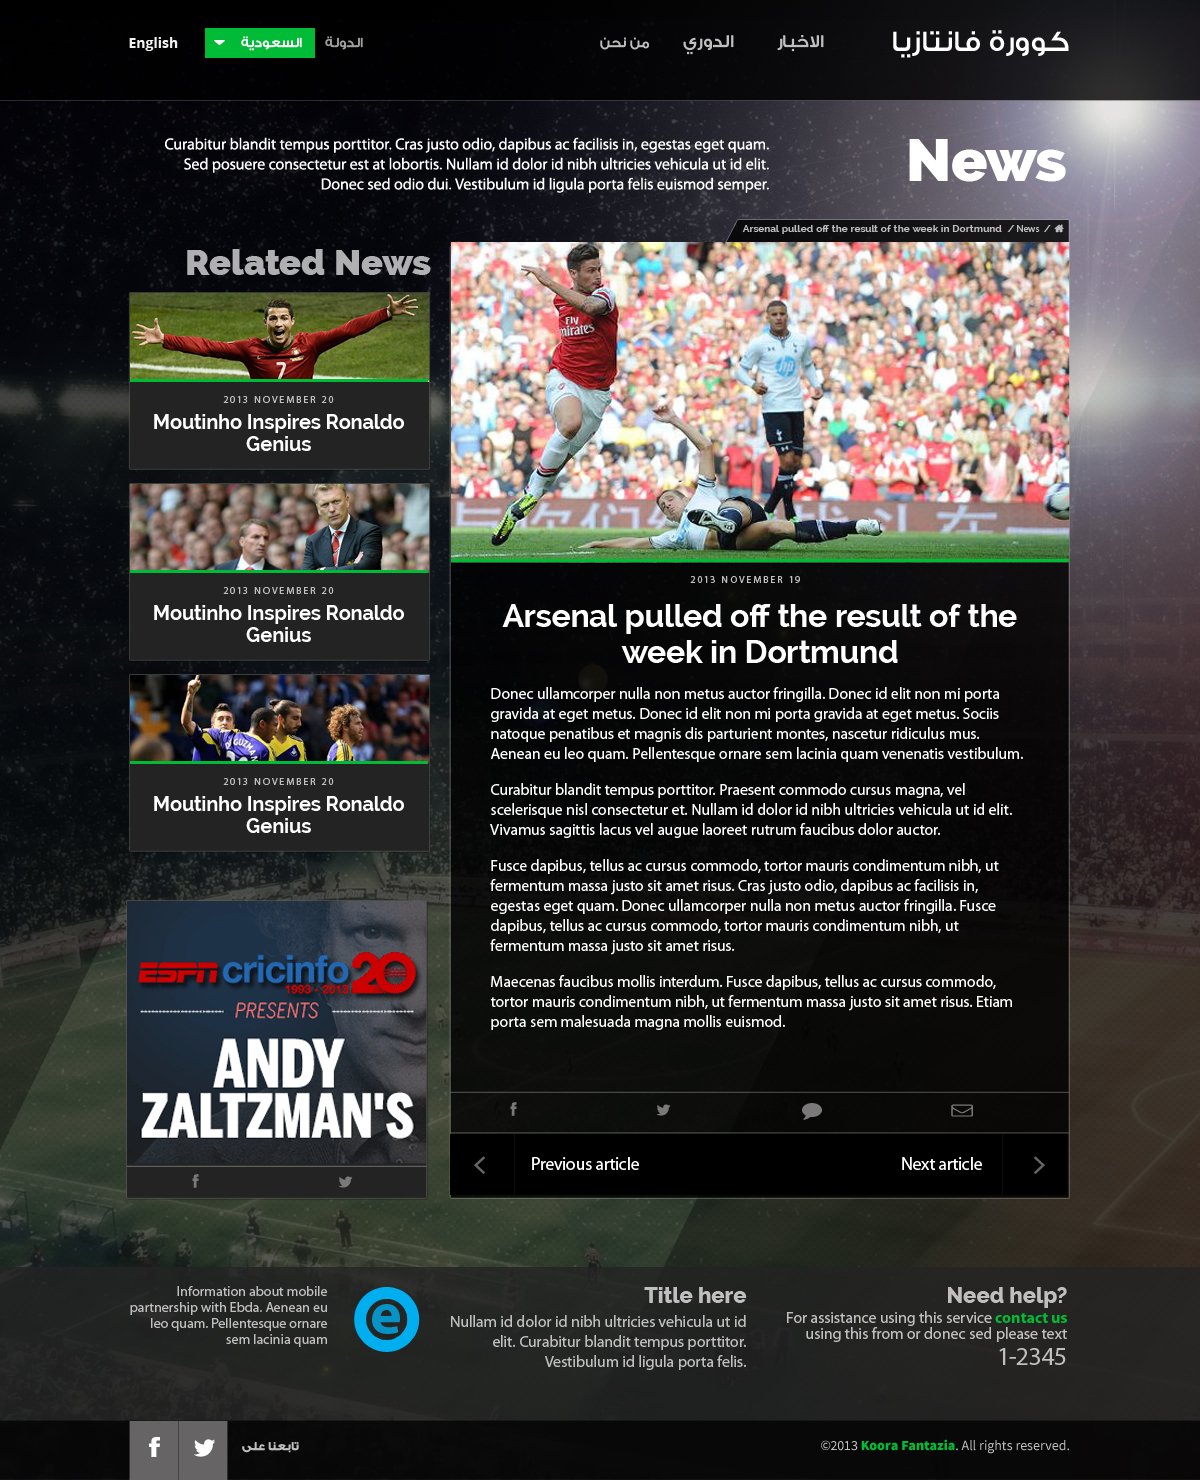 News Detail Page